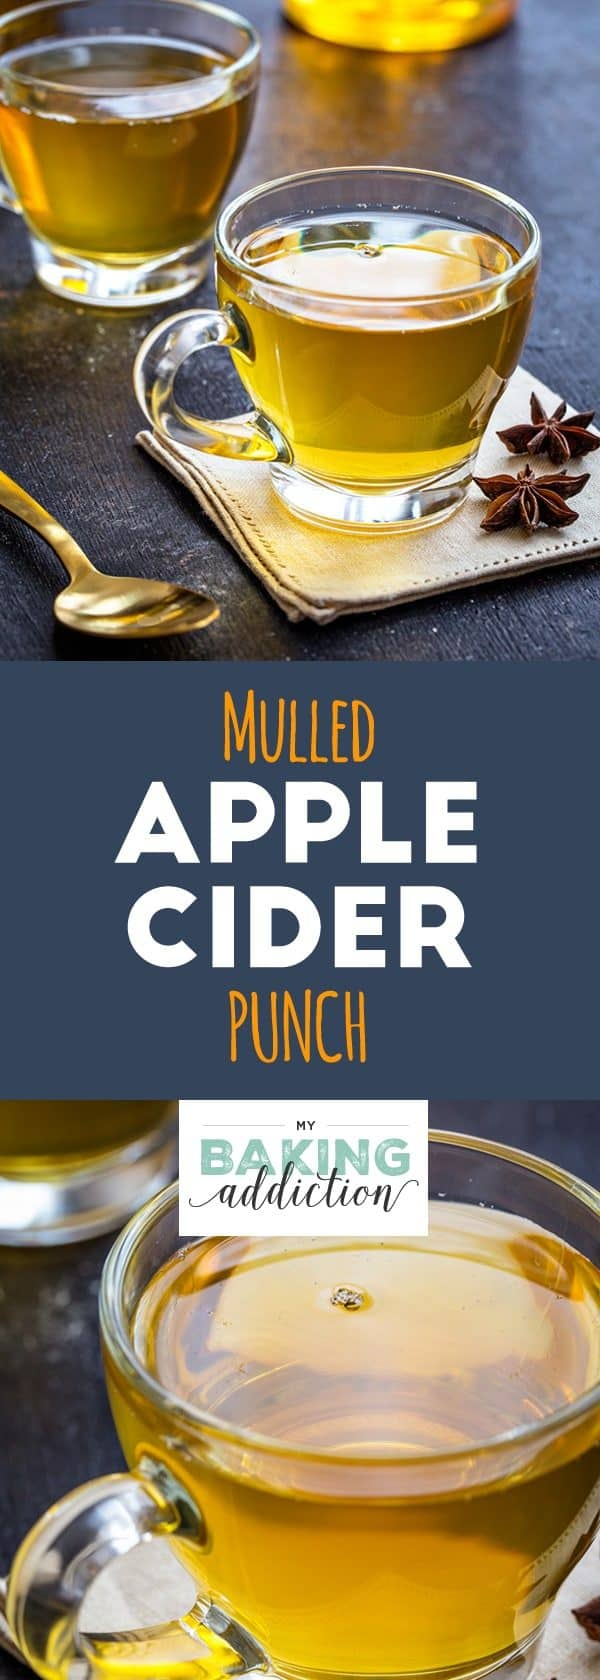 Mulled Apple Cider Punch is a festive drink you can serve hot or cold at your Thanksgiving celebration. So good!